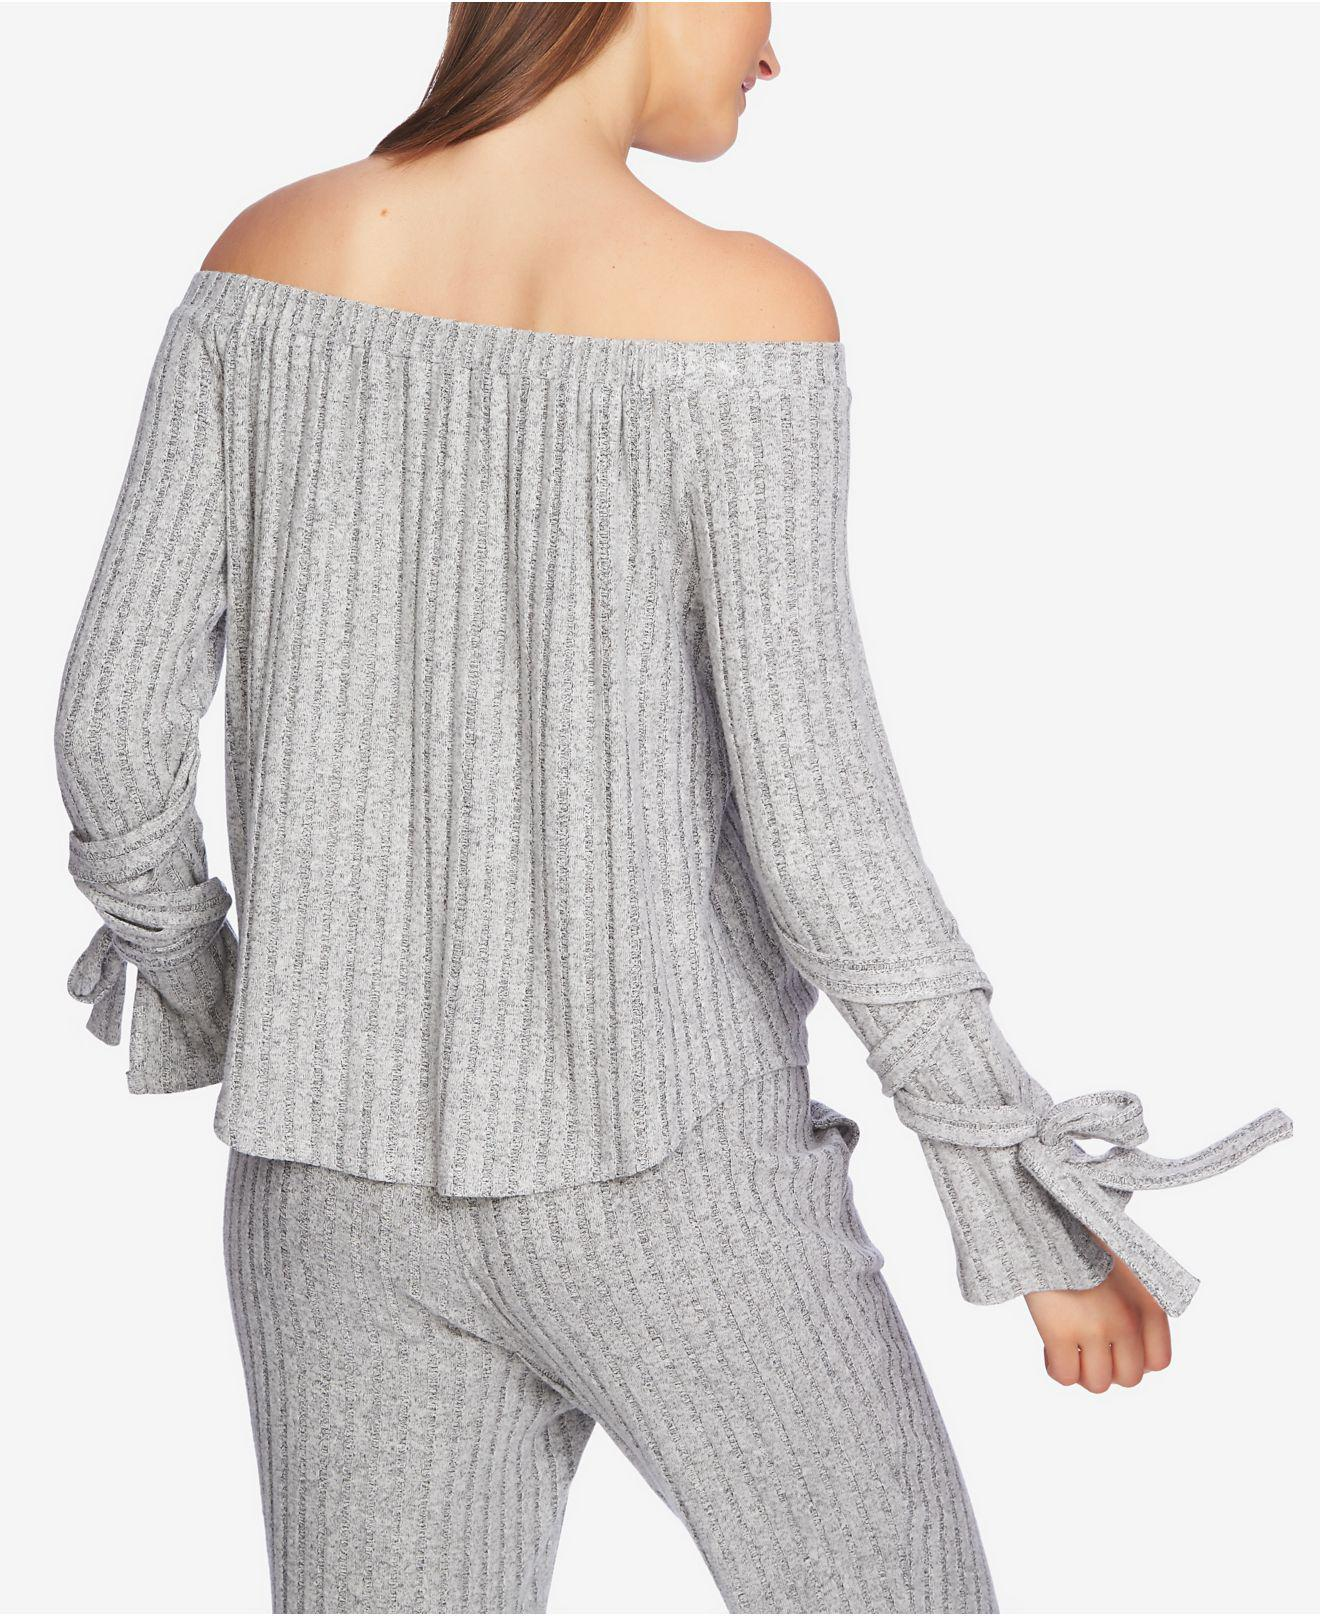 8f6e7a1c5ee Lyst - 1.STATE Cozy Off-the-shoulder Tie-sleeve Top in Gray